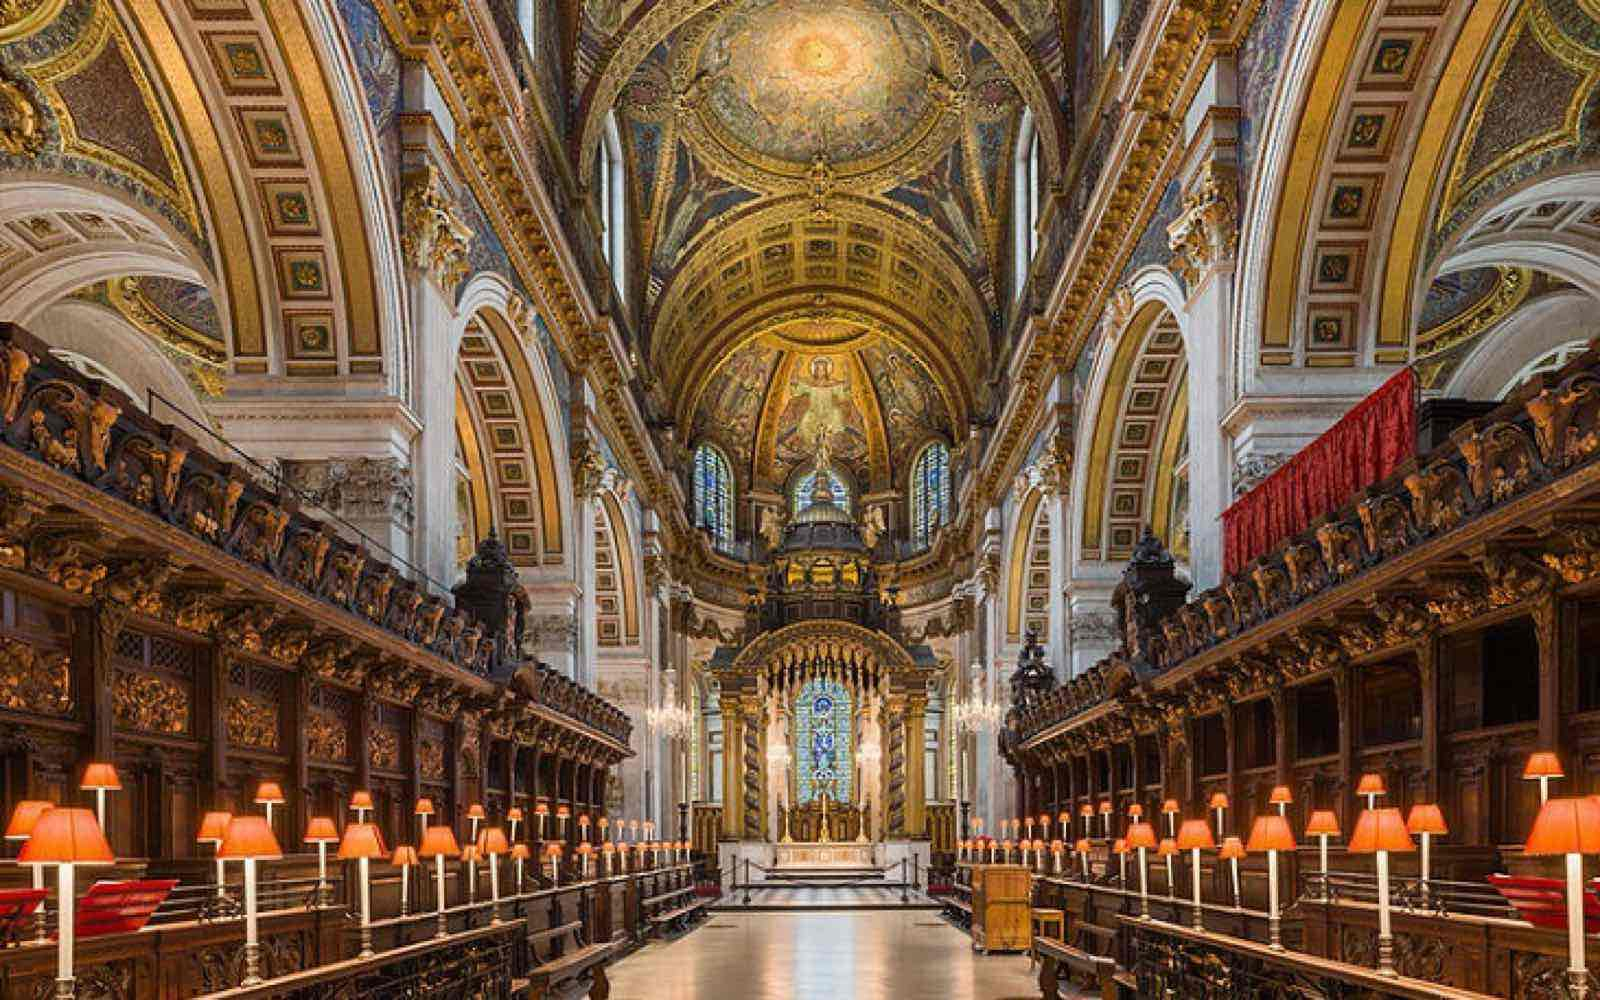 Step inside and you can enjoy the Cathedral's awe-inspiring interior, and uncover fascinating stories about its history.